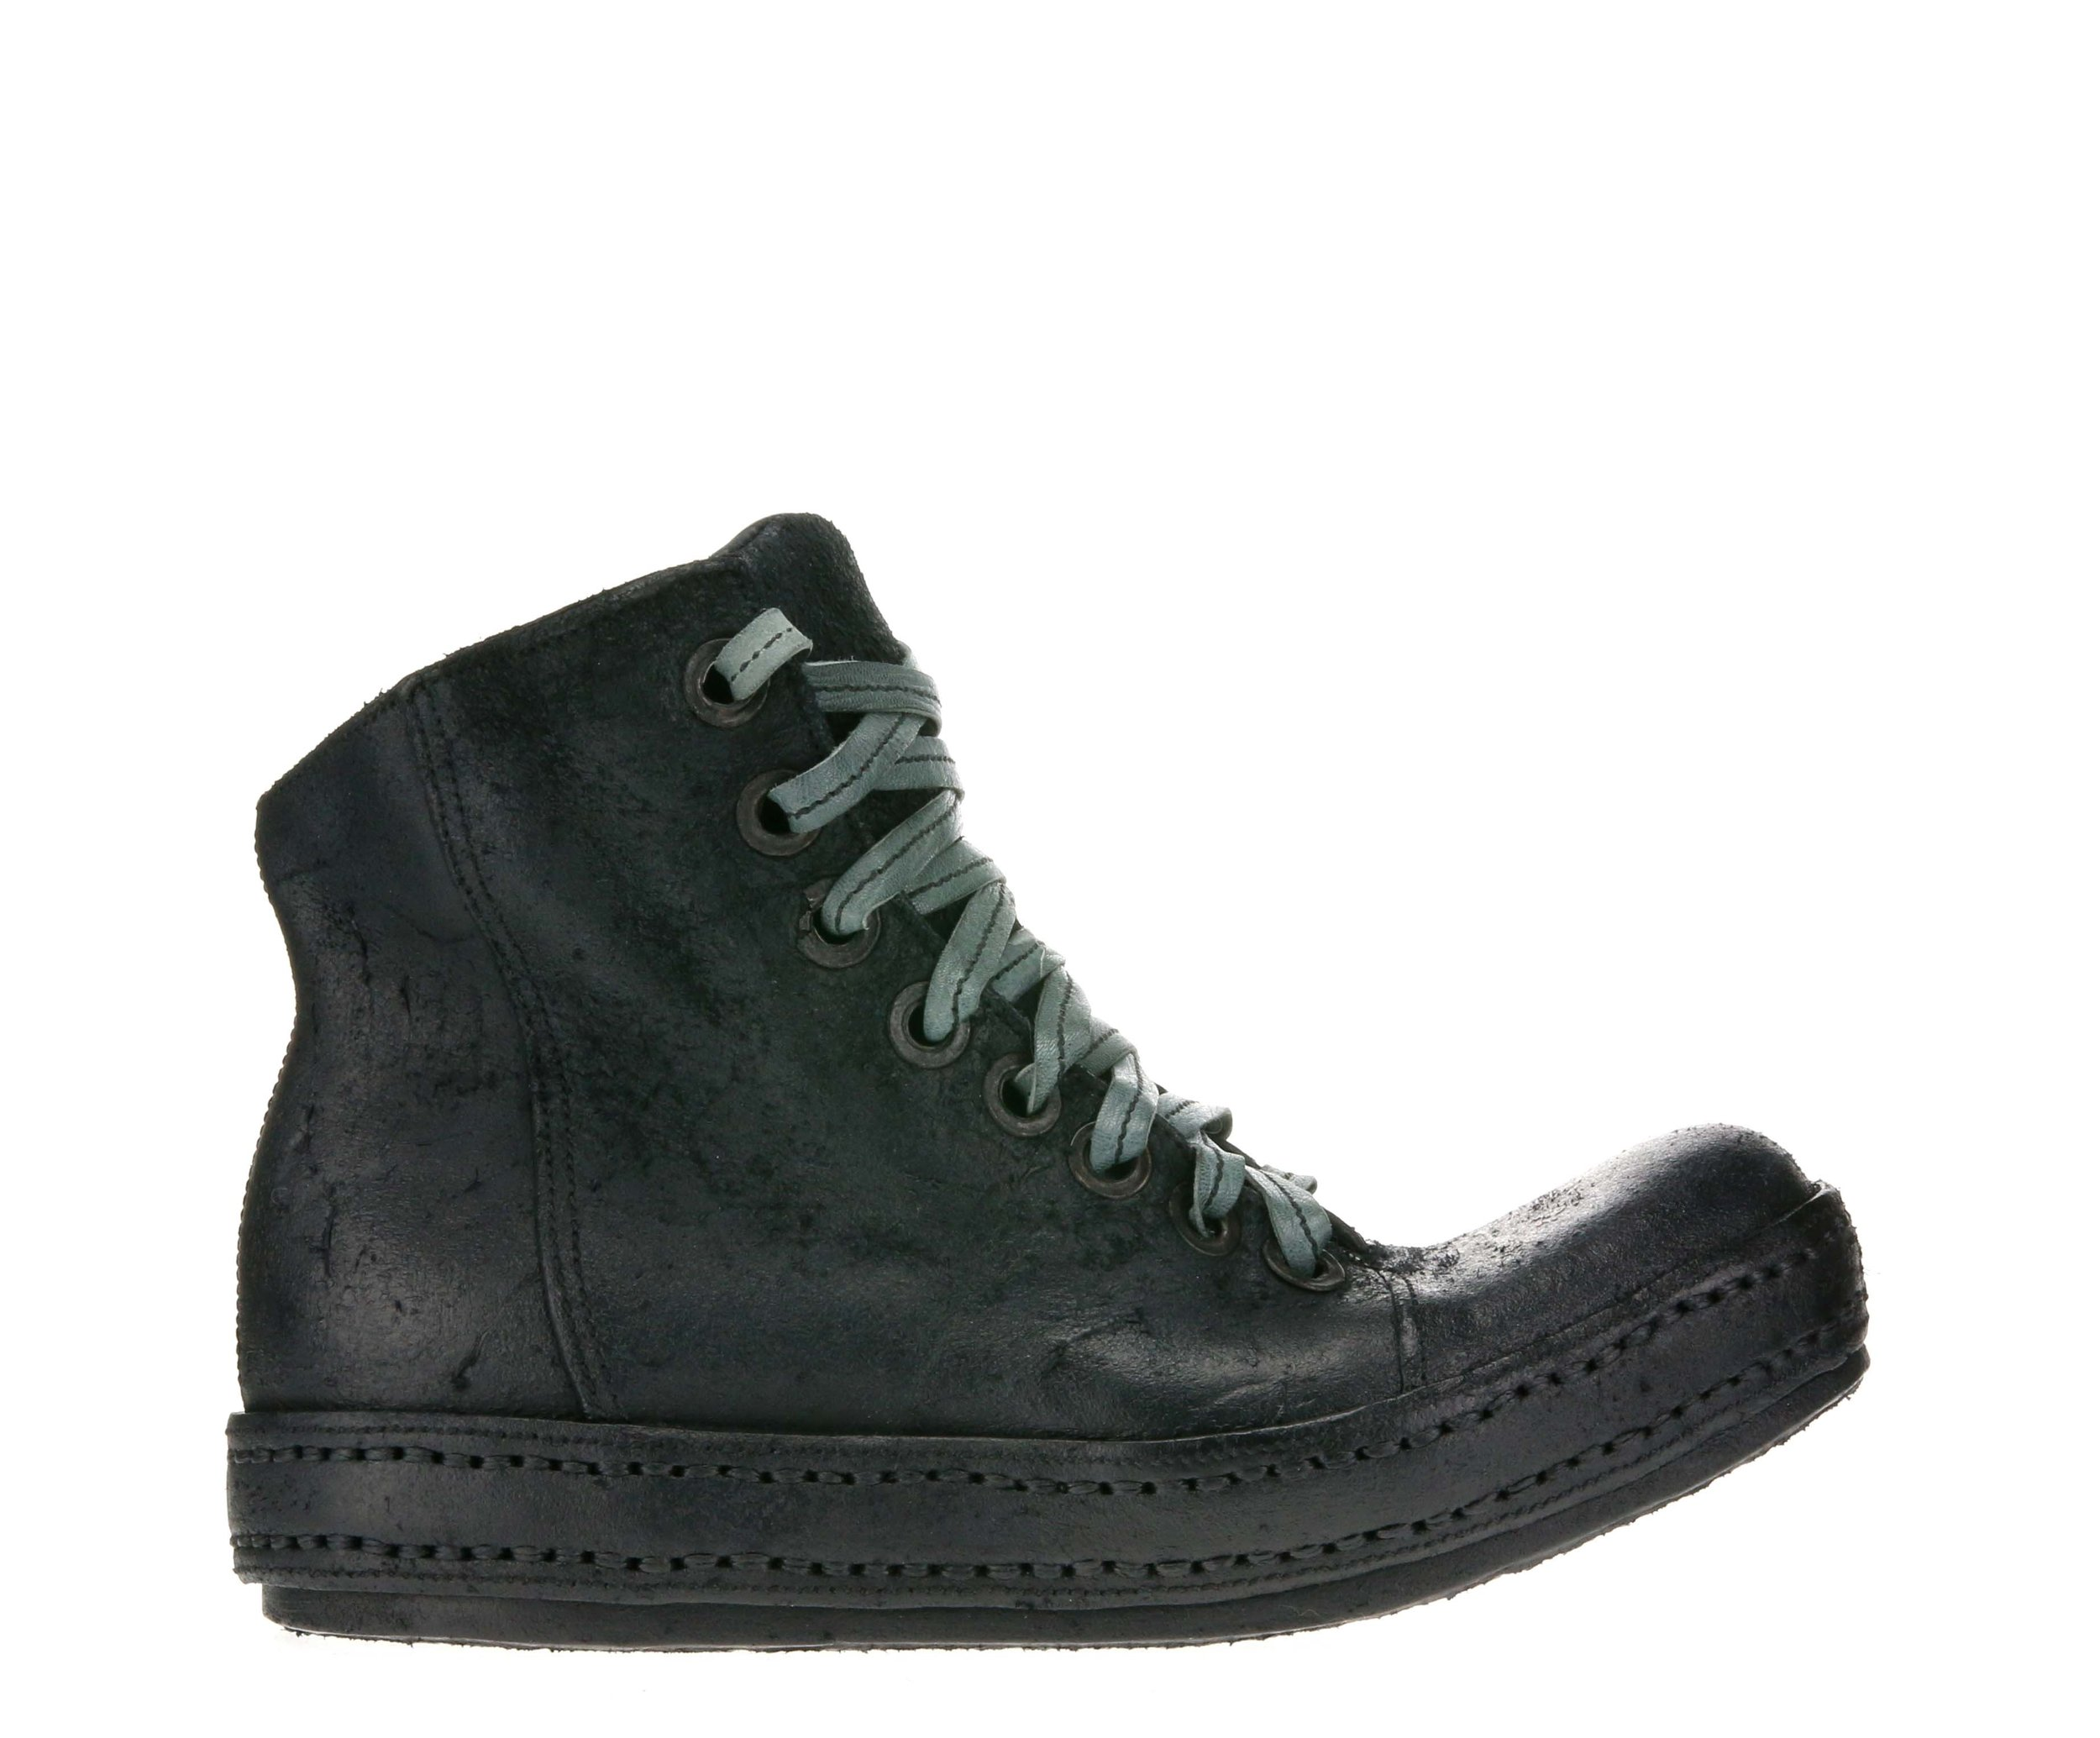 8Hole SP Black Suede Outside.jpg